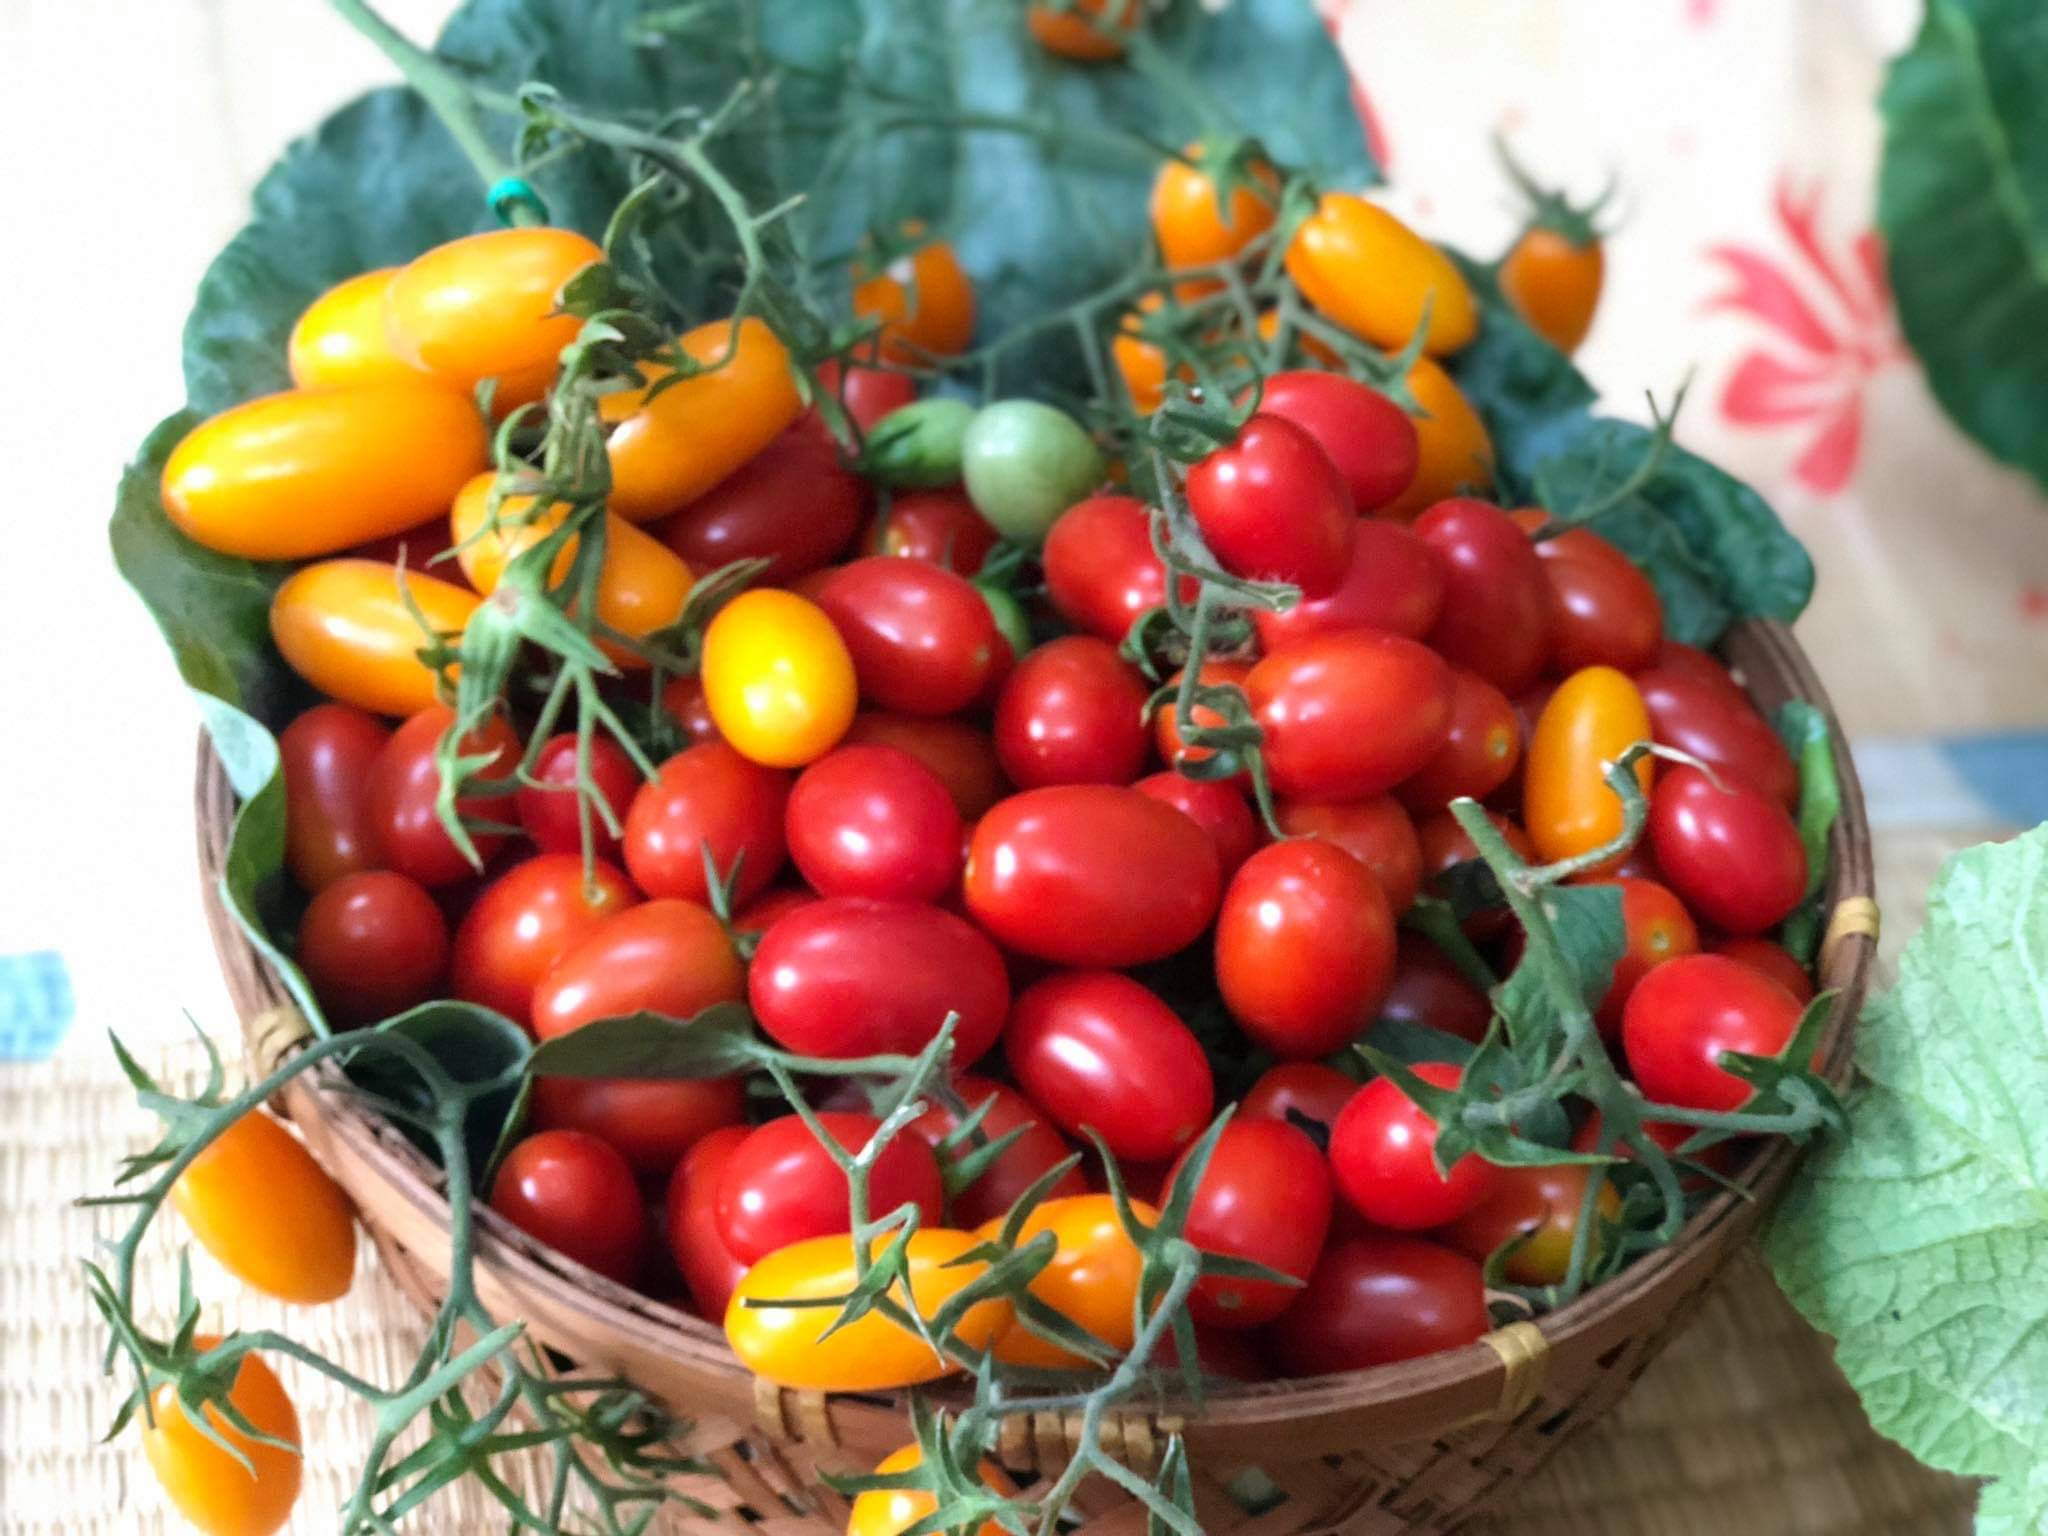 Red and yellow tomatoes harvested from Thuong's balcony garden. Photo: Bui Thuong / Tuoi Tre